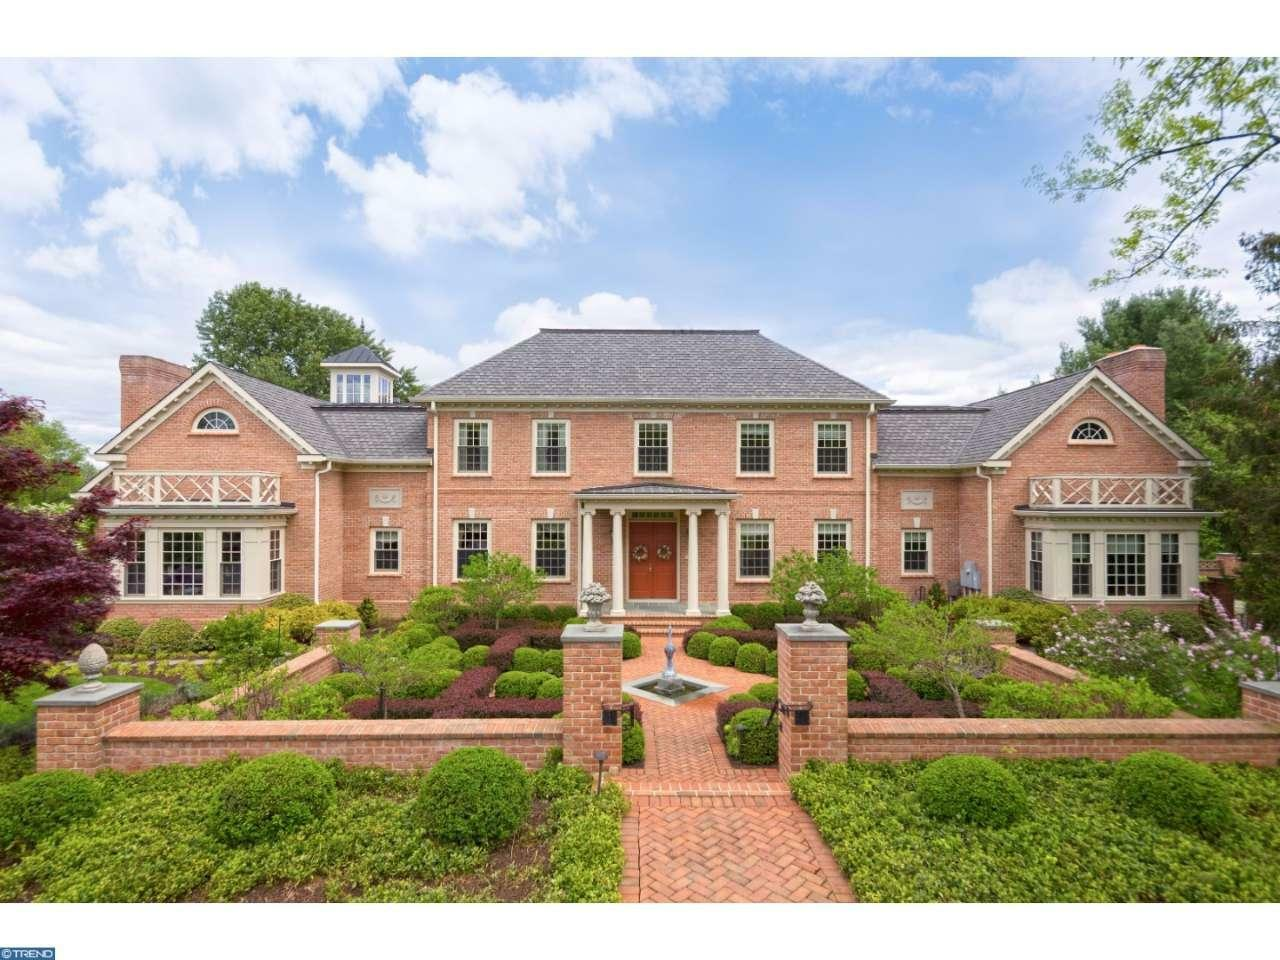 10 Chase Hollow Rd, Hopewell, NJ - USA (photo 1)